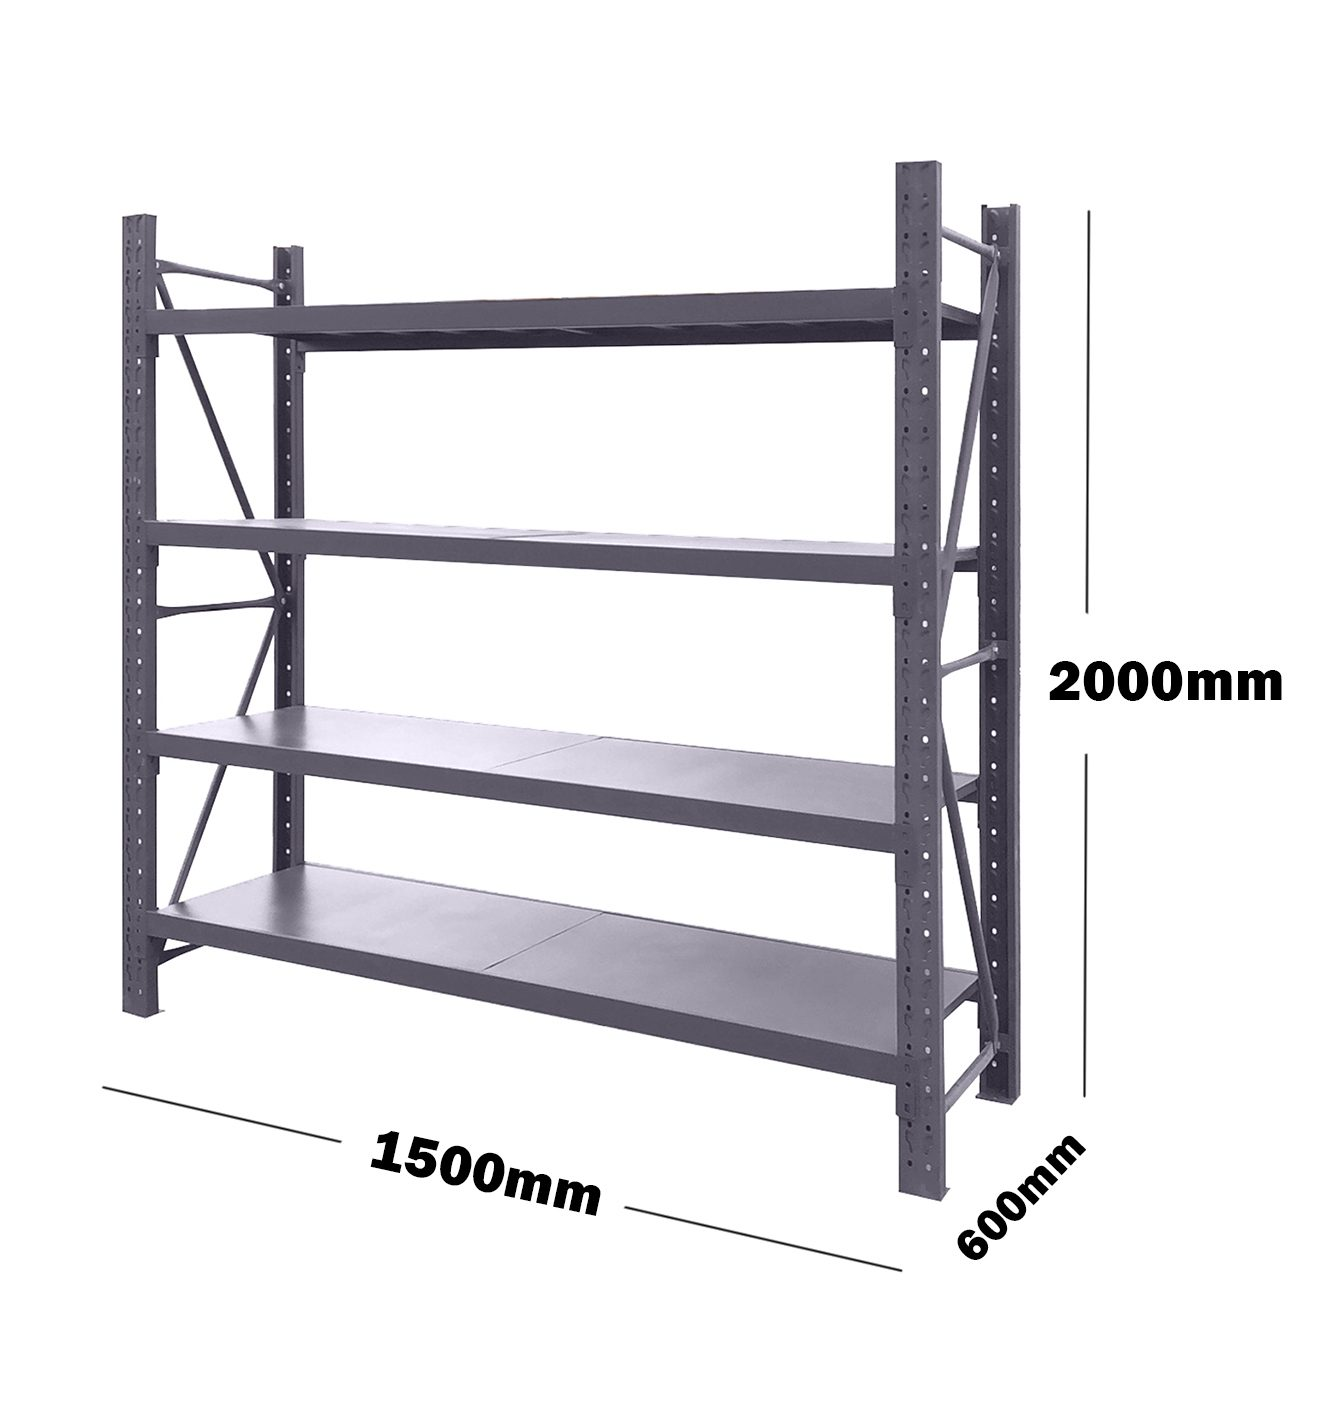 1.5M(L) x 2M(H) x 0.6M(D) Shelves Racking Metal Steel CHARCOAL 1520C